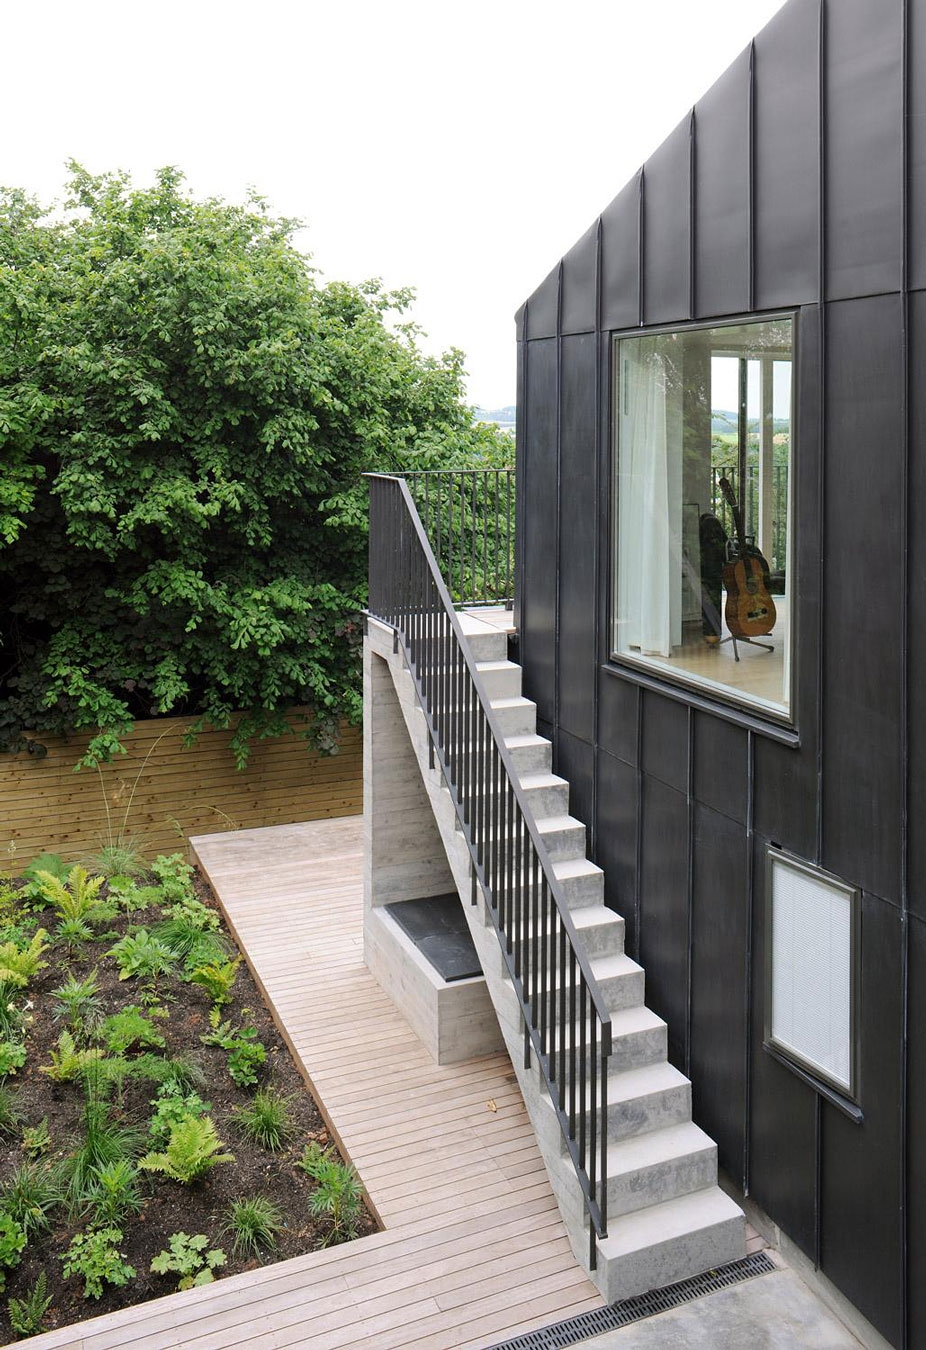 Modern Outdoor Stair Railing Designs And Ideas That Actually Make | Modern Stairs Design Outdoor | Ultra Modern | Deck | Contemporary | Railing | Spiral